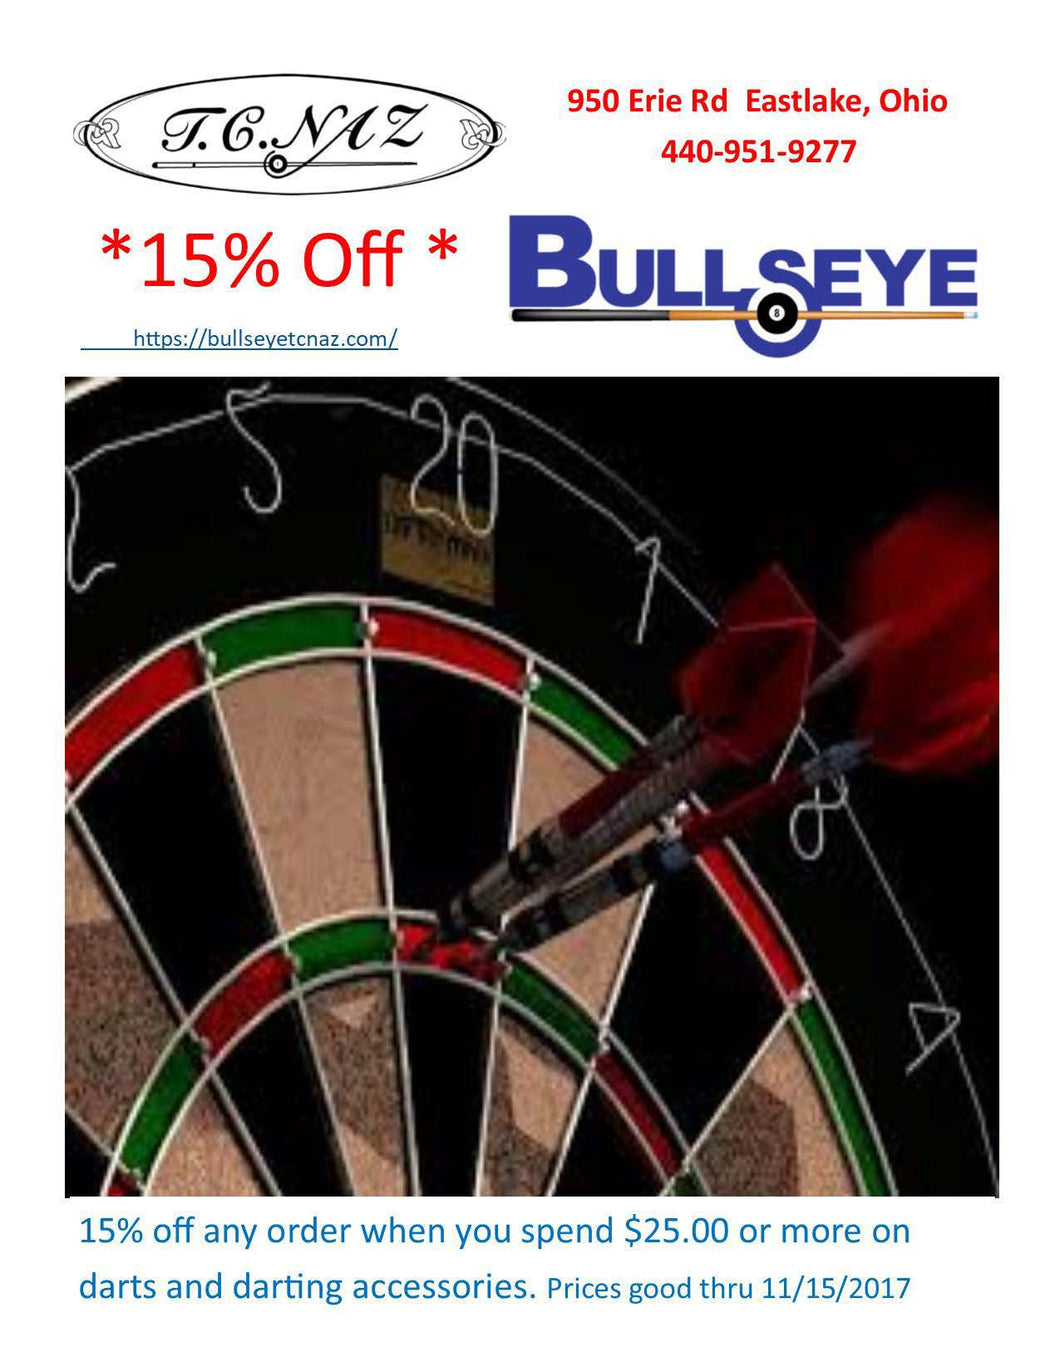 Dart special for 15% off